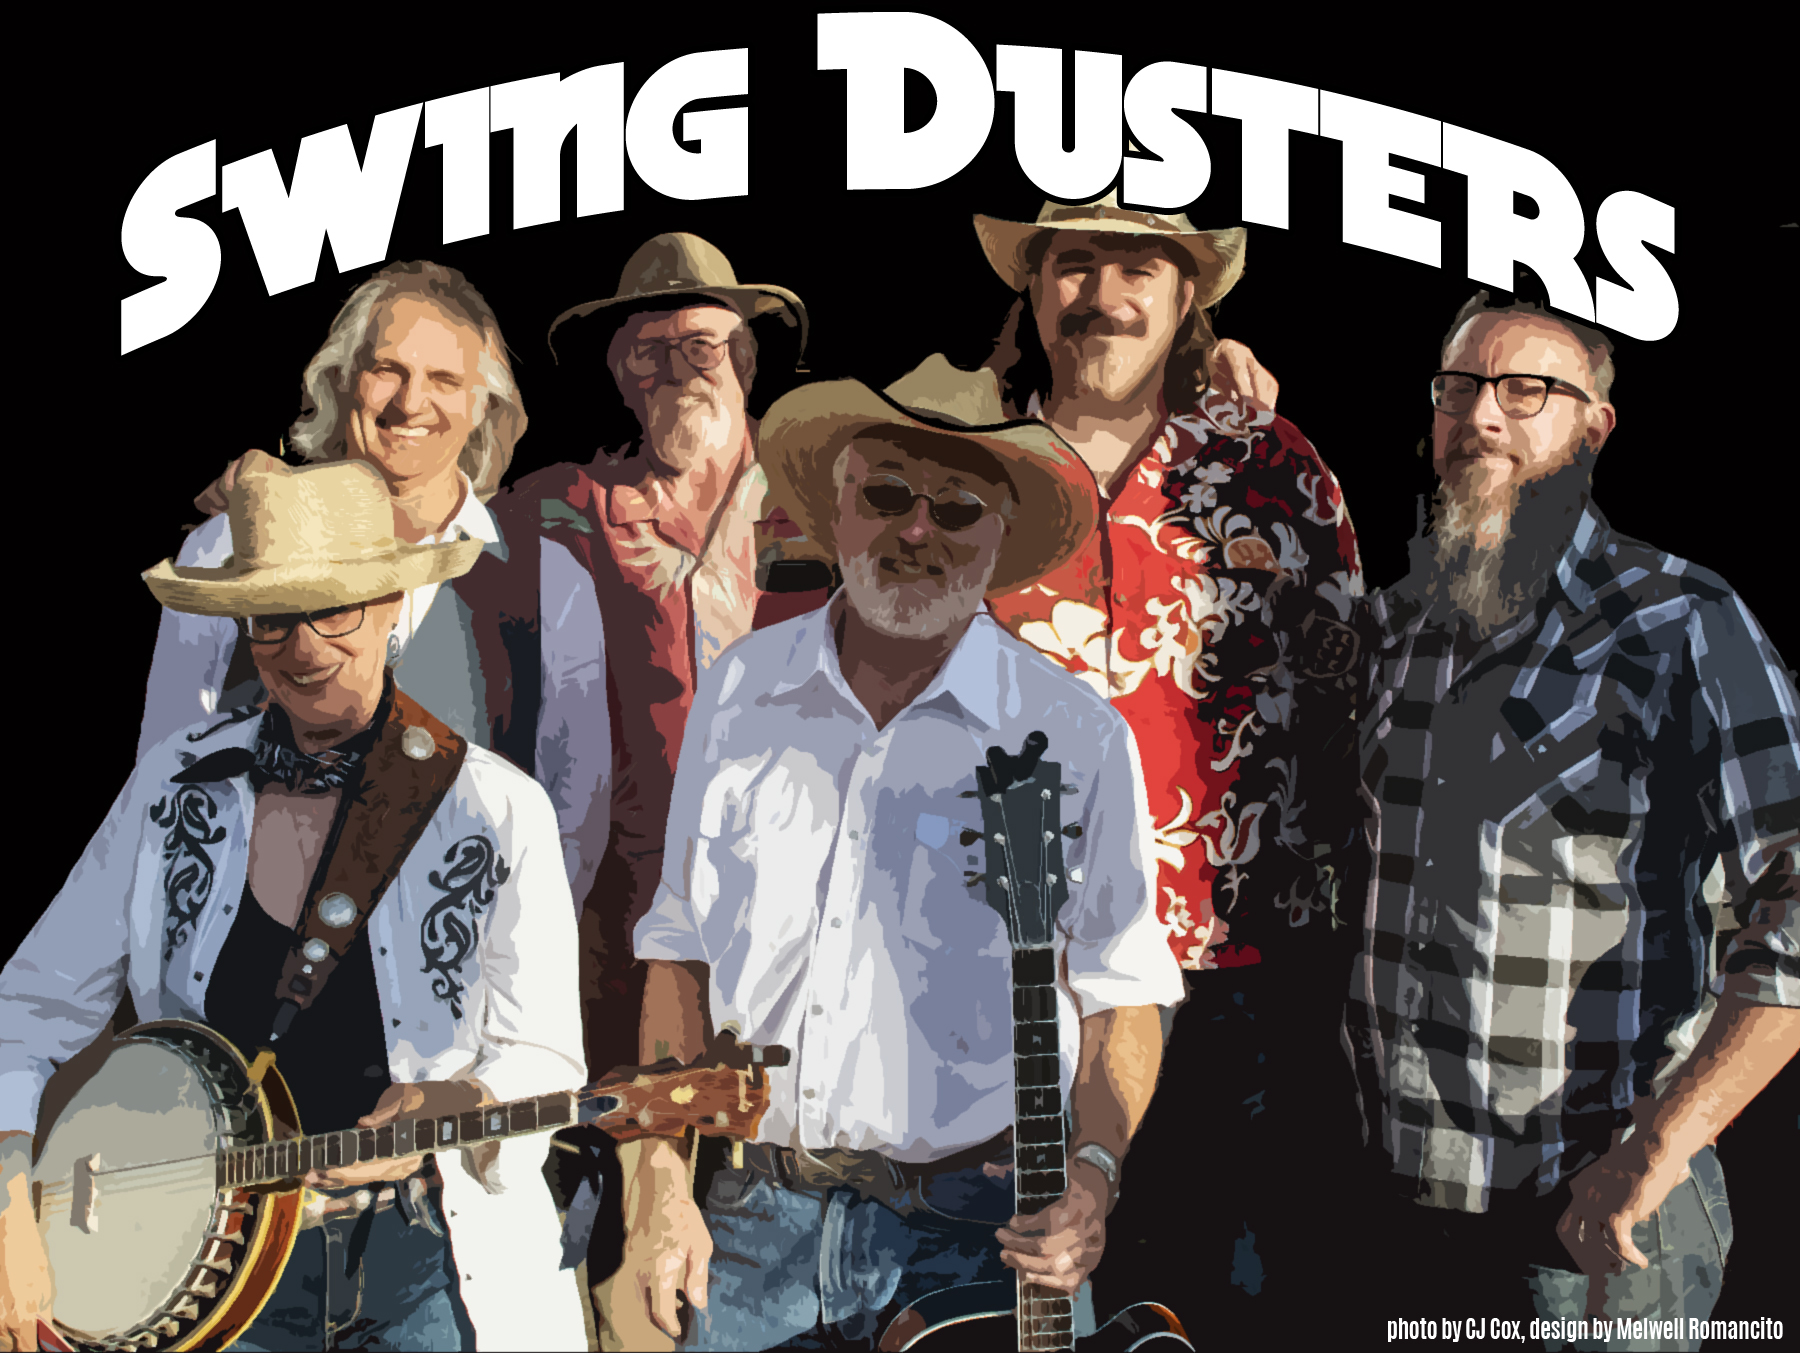 Swing Dusters, photo by CJ Cox, design by Melwell